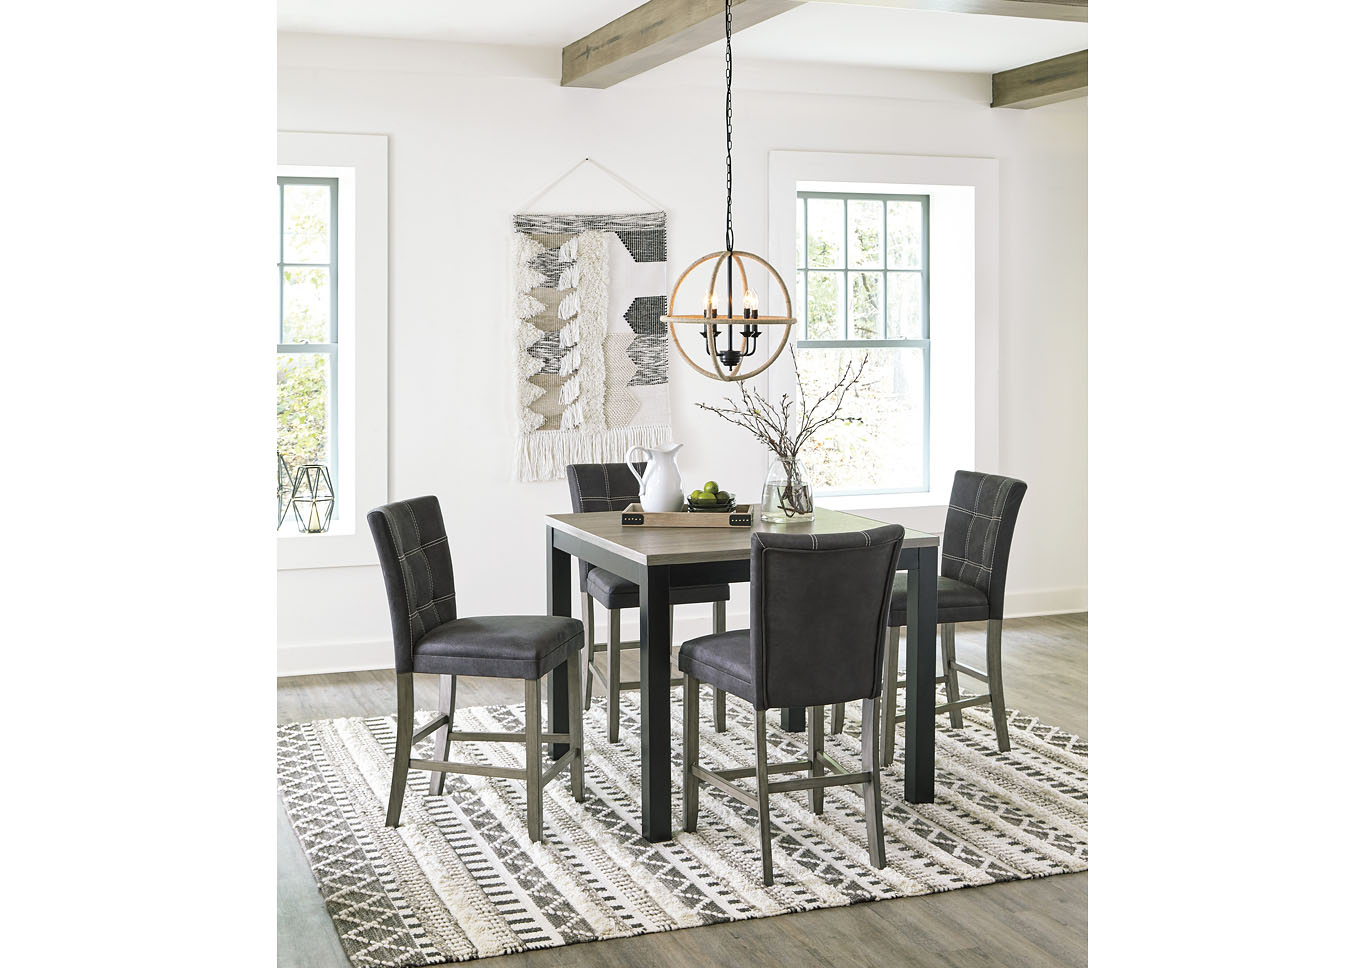 Dontally Two-tone Counter Height Dining Room Table w/4 Bar Stool,Benchcraft